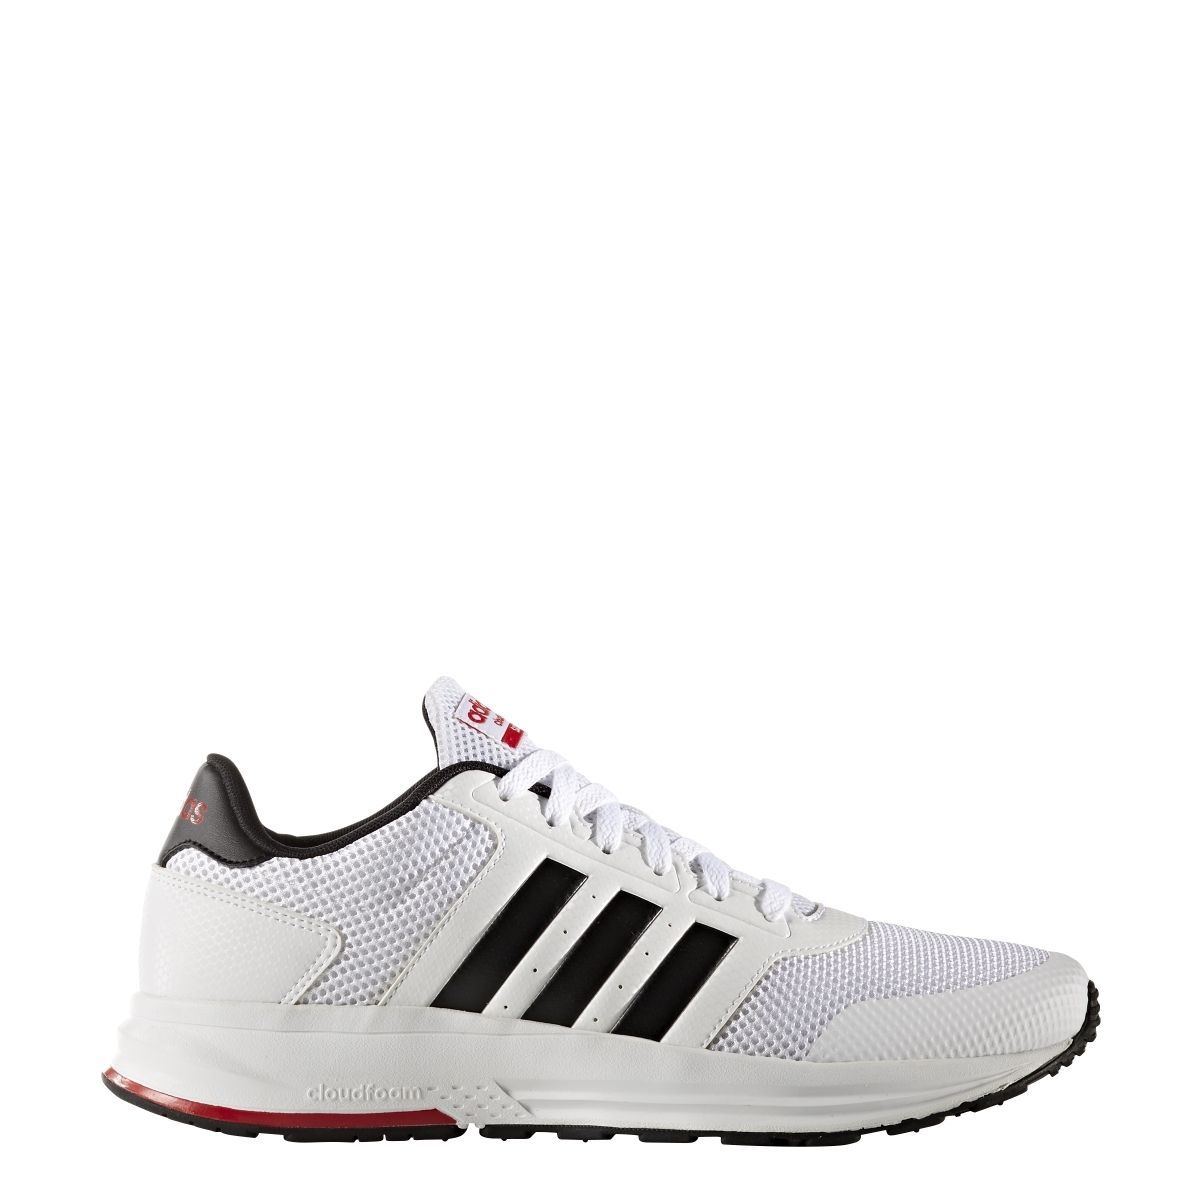 UK Shoes - Mens Adidas Cloudfoam Saturn White Athletic Sport Running Shoes AW3841 Sz 9-14 White